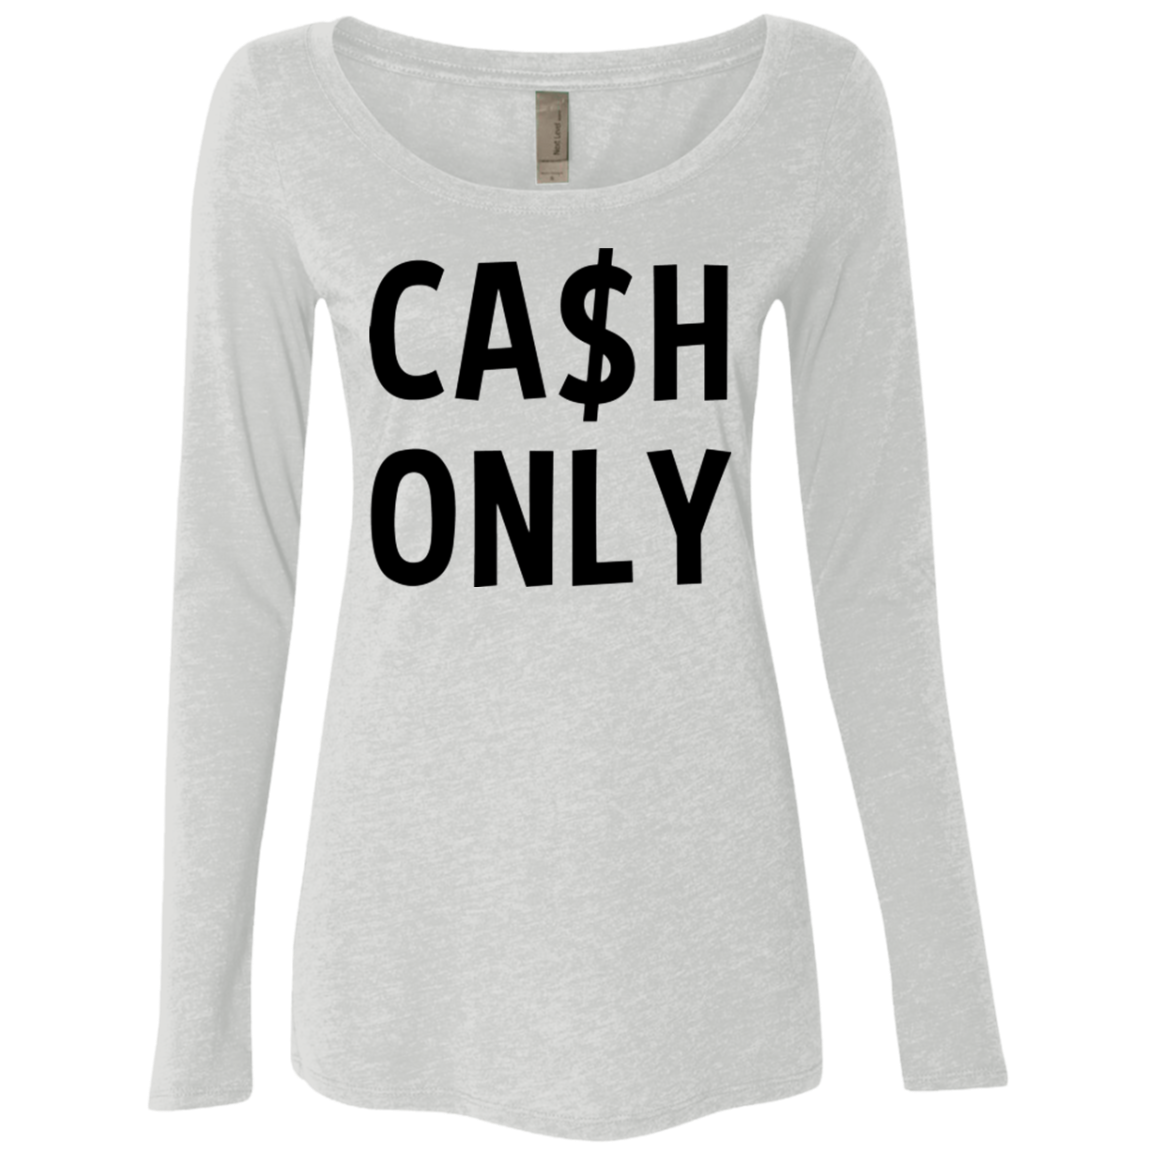 Cash Only Women's Long Sleeve Tee